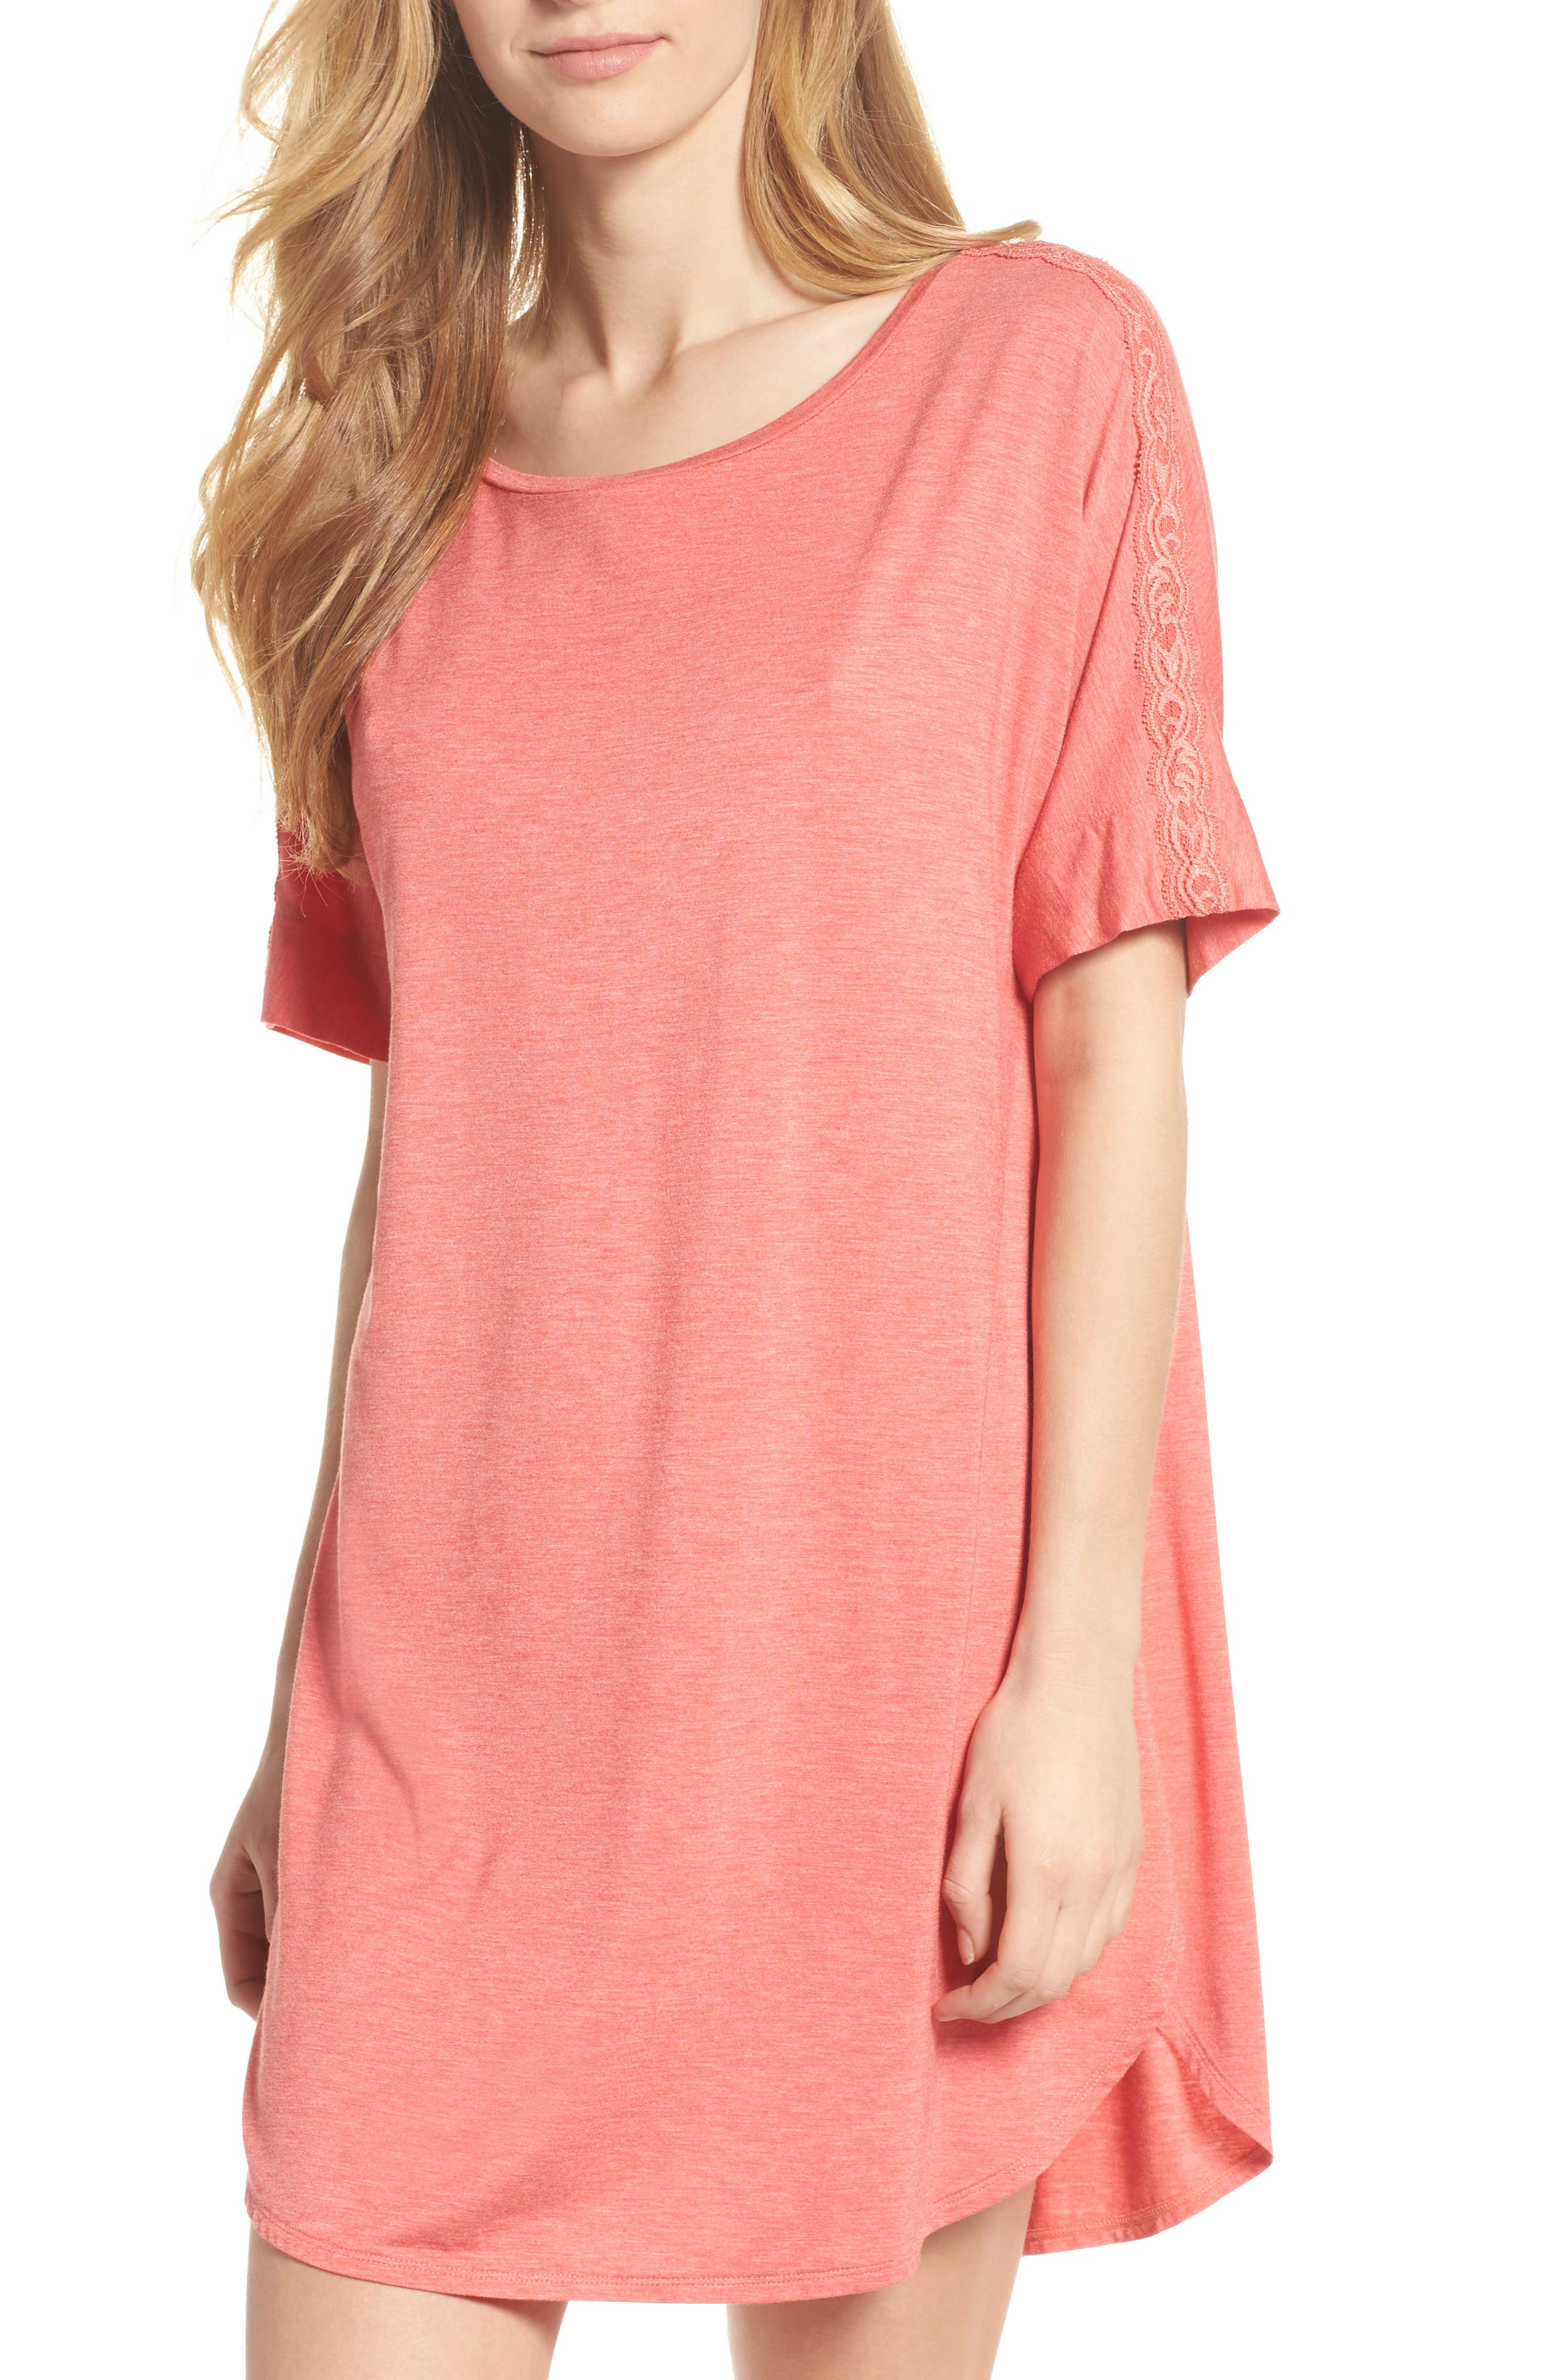 Feathers Essential Sleep Shirt,                             Main thumbnail 1, color,                             Coral